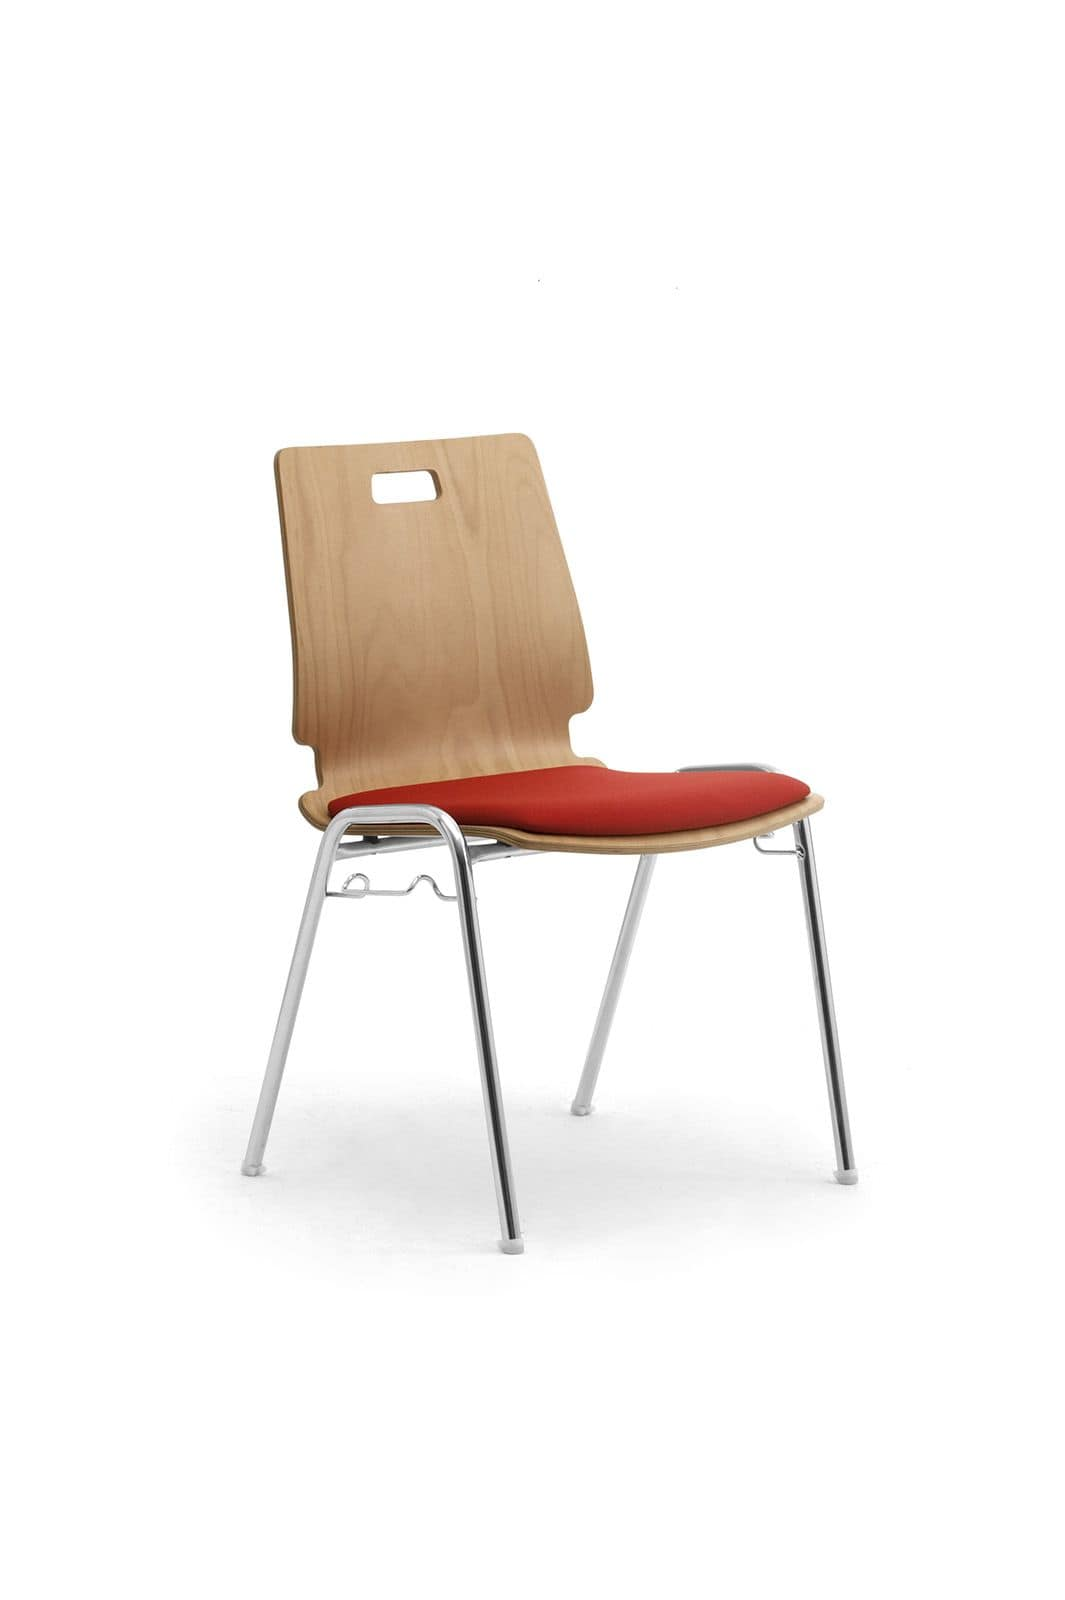 Cristallo 0662LE, Chair made of wood and metal for waiting rooms and offices